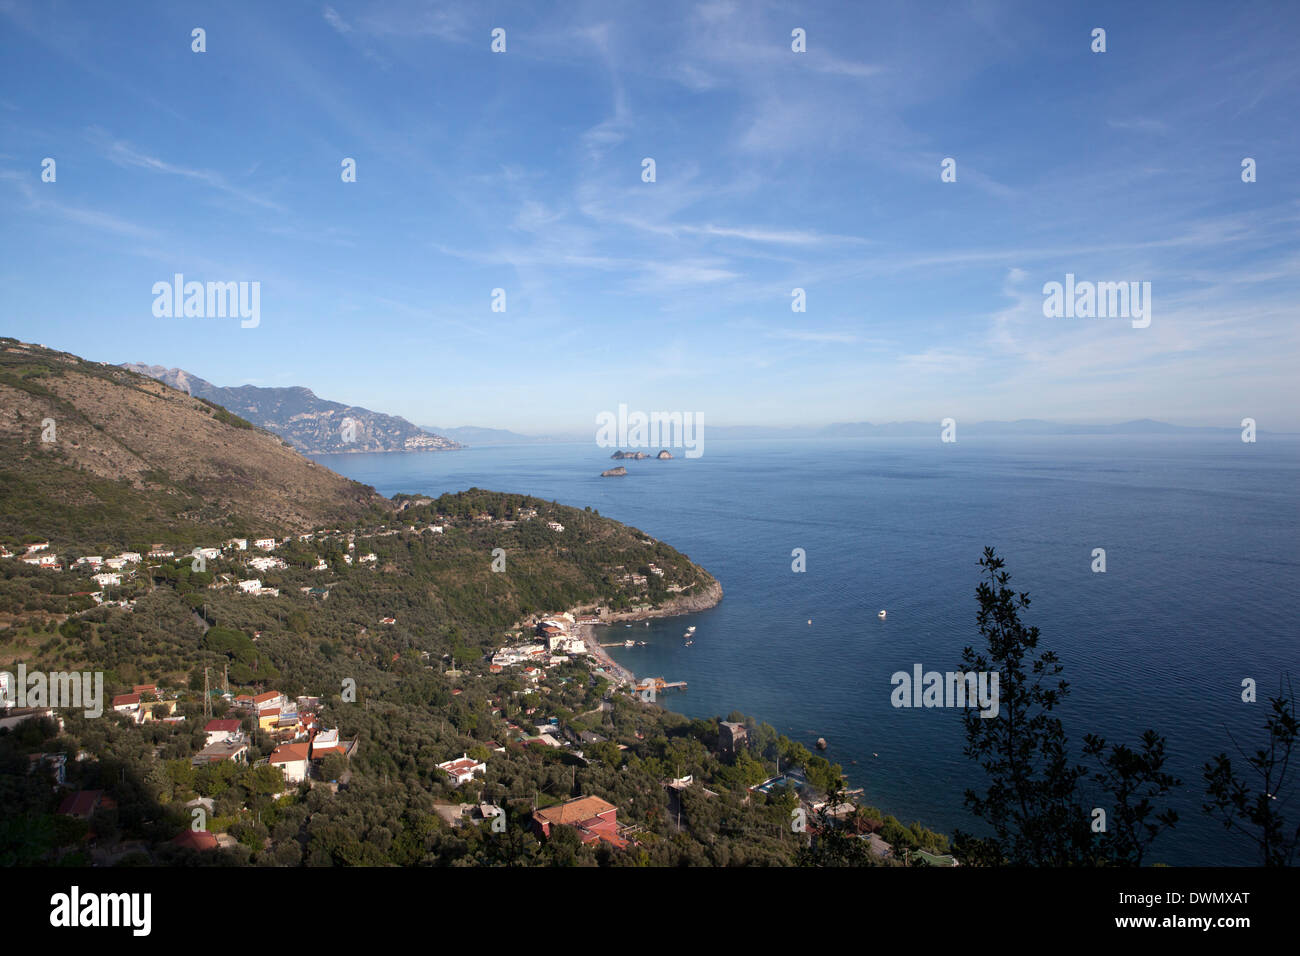 View of the entire Amalfi Coast, UNESCO World Heritage Site, from the top of the Ieranto Bay, Campania, Italy, Mediterranean - Stock Image